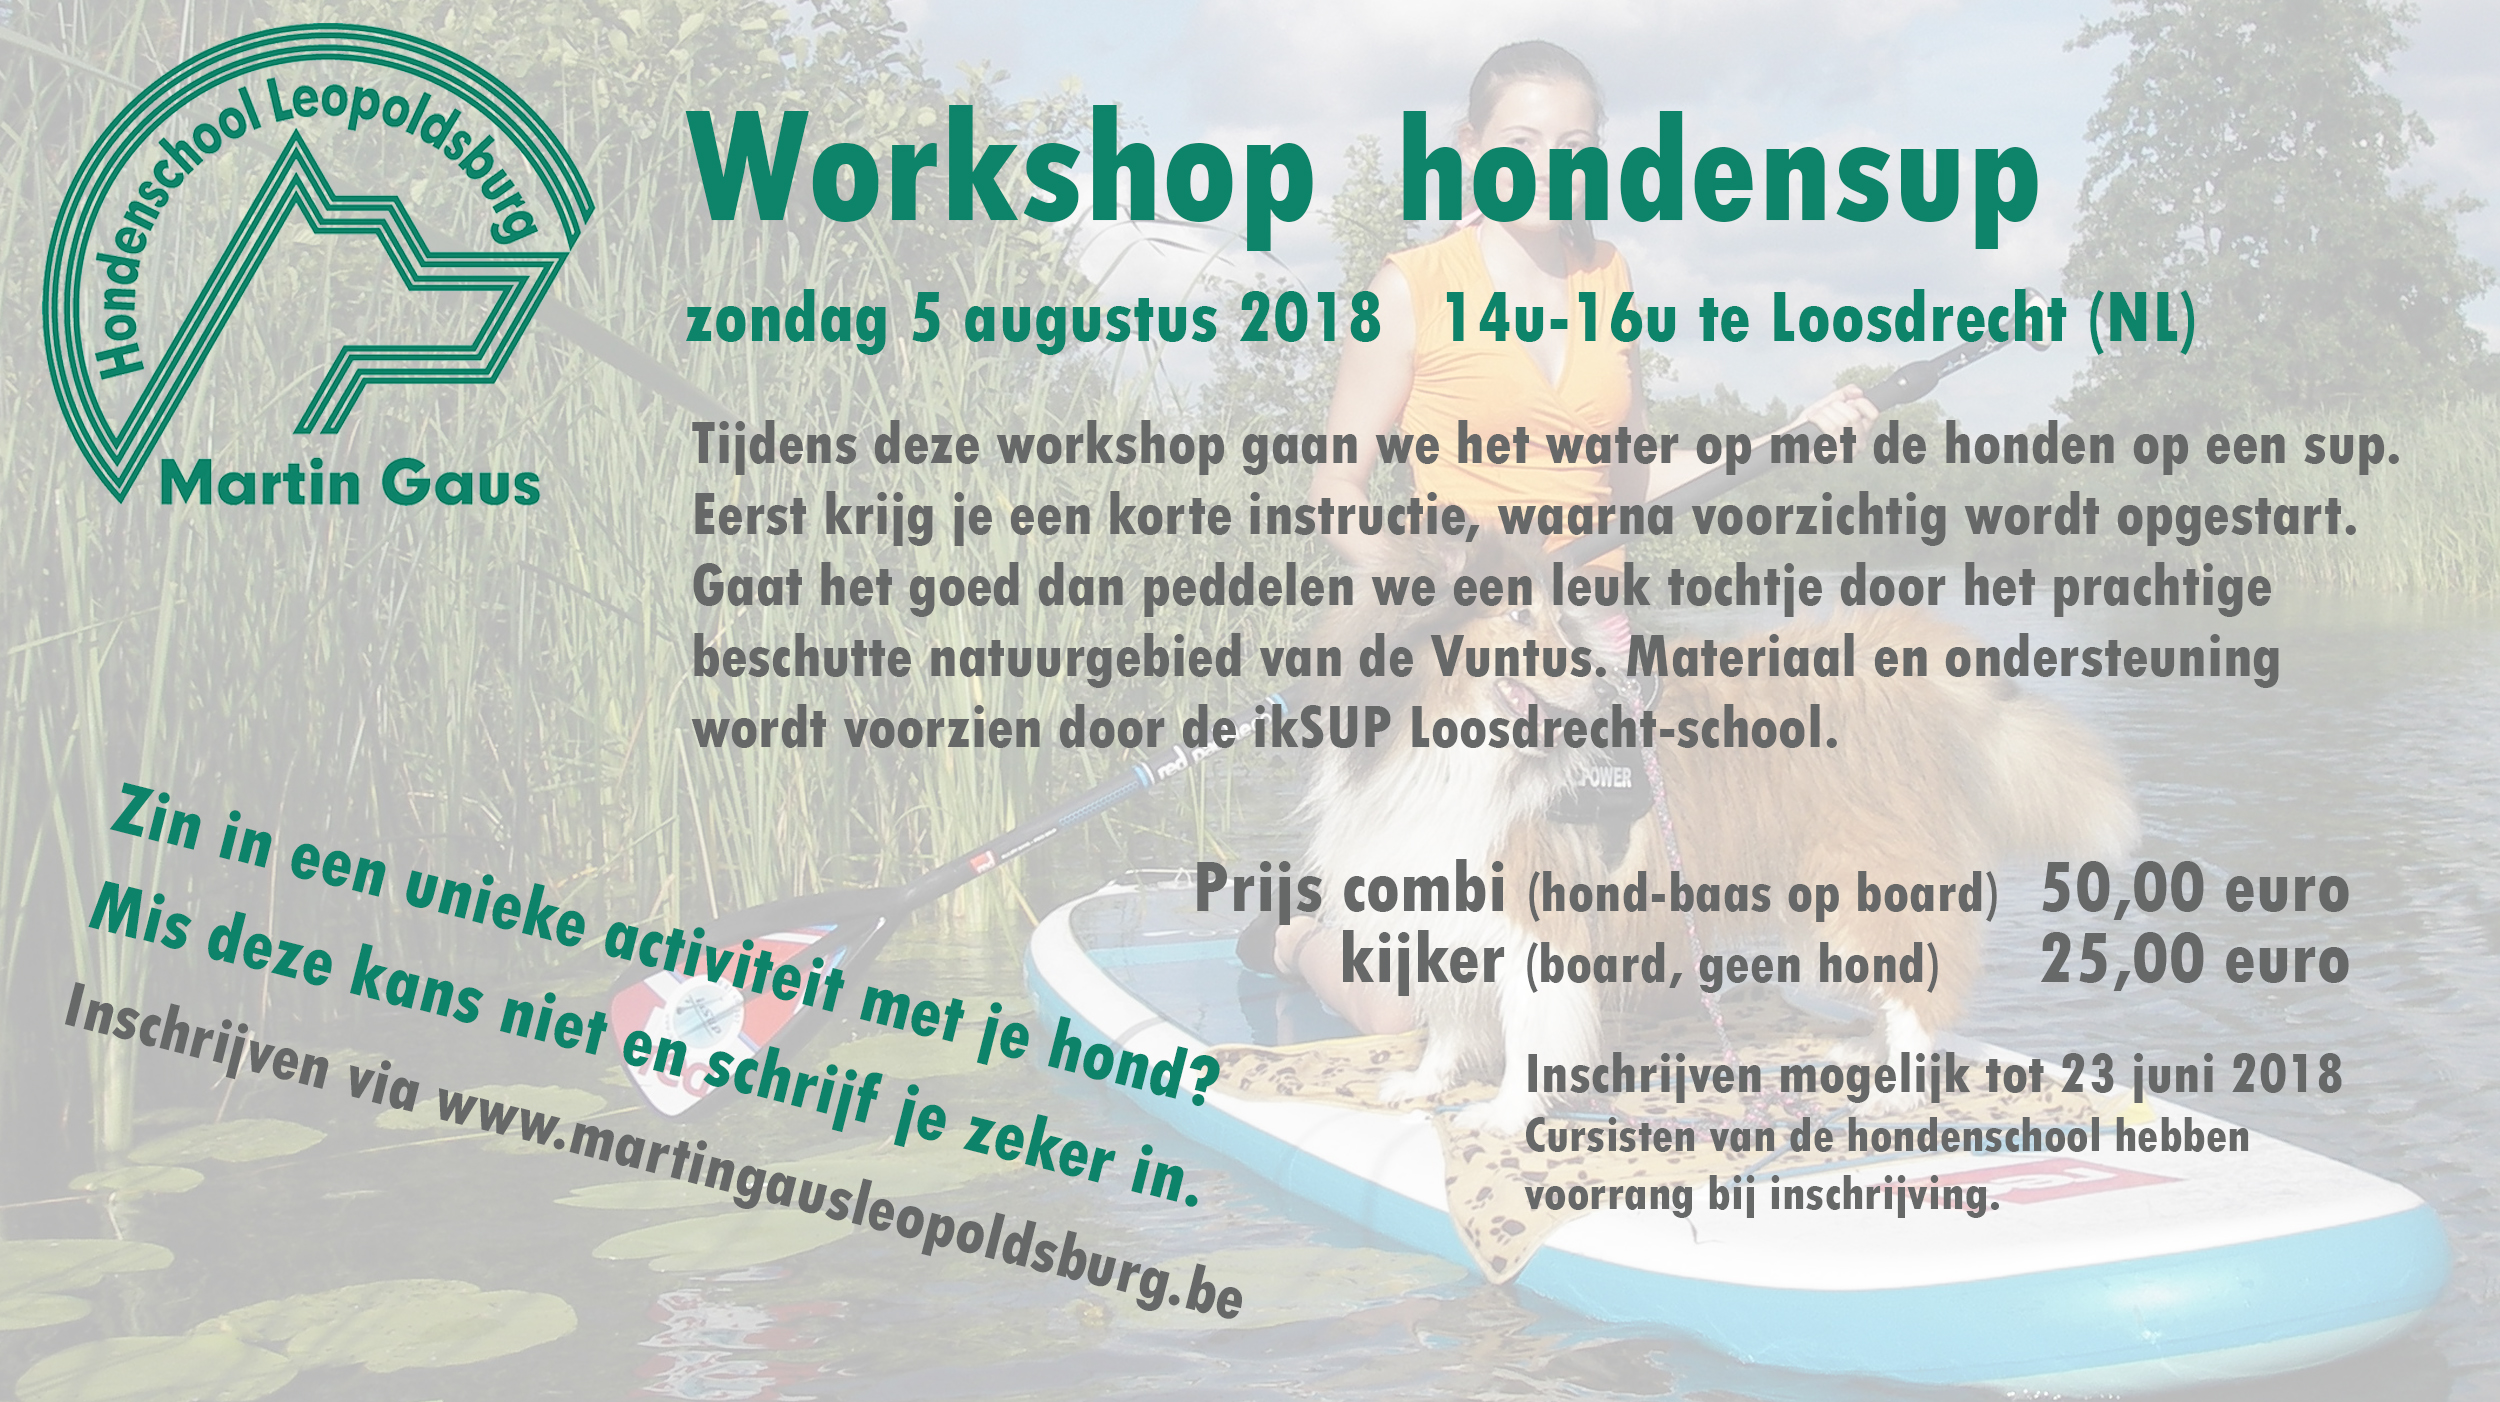 Workshop hondensup